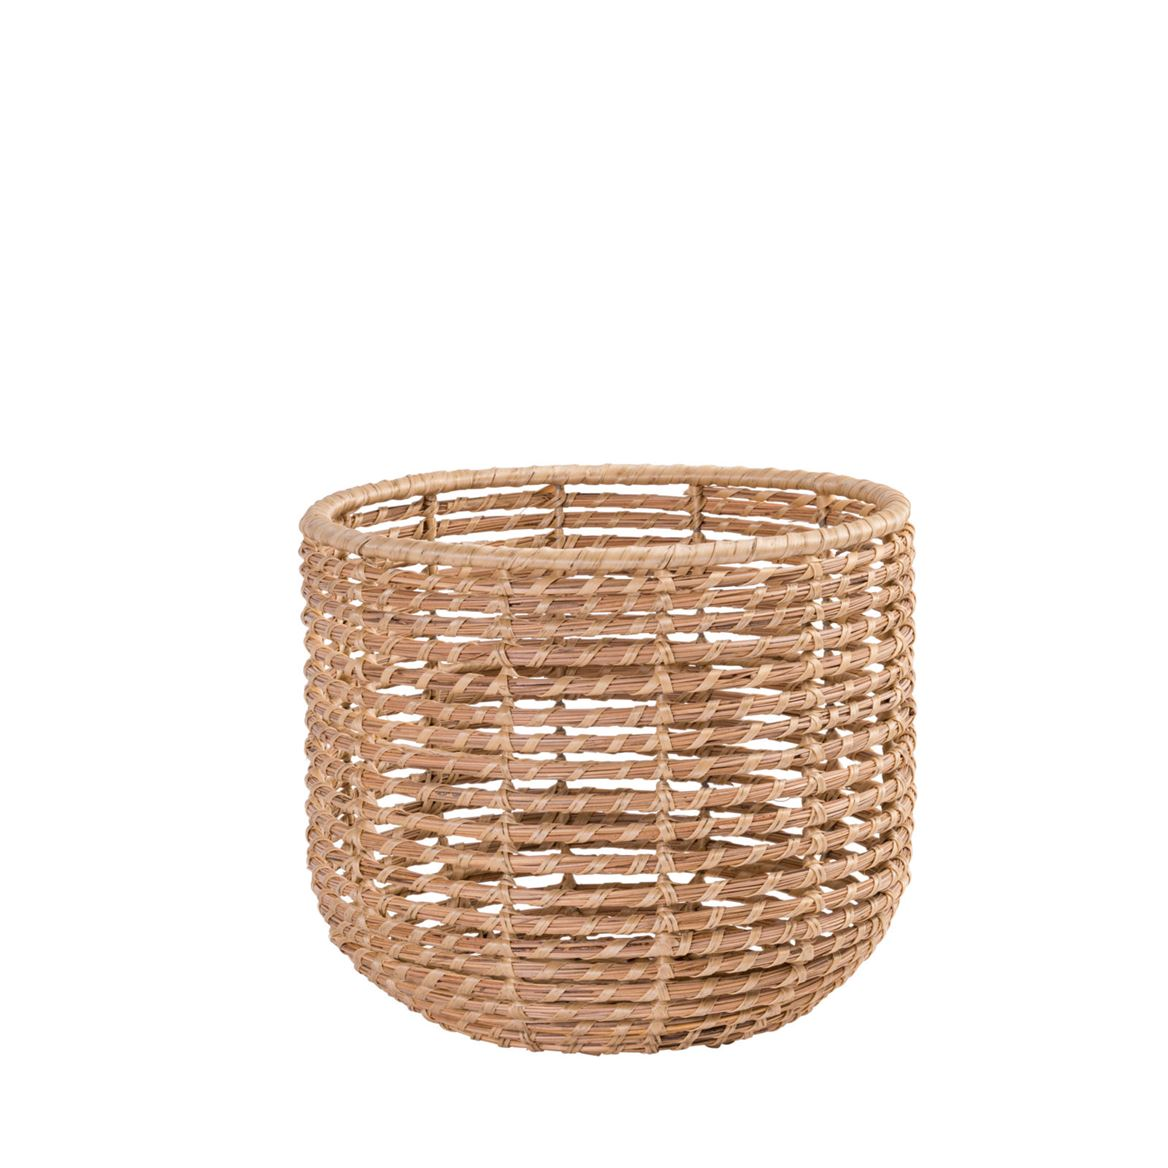 ALABAMA COCO Panier indoor/outdoor naturel H 29 cm; Ø 34 cm_alabama-coco-panier-indooroutdoor-naturel-h-29-cm;-ø-34-cm